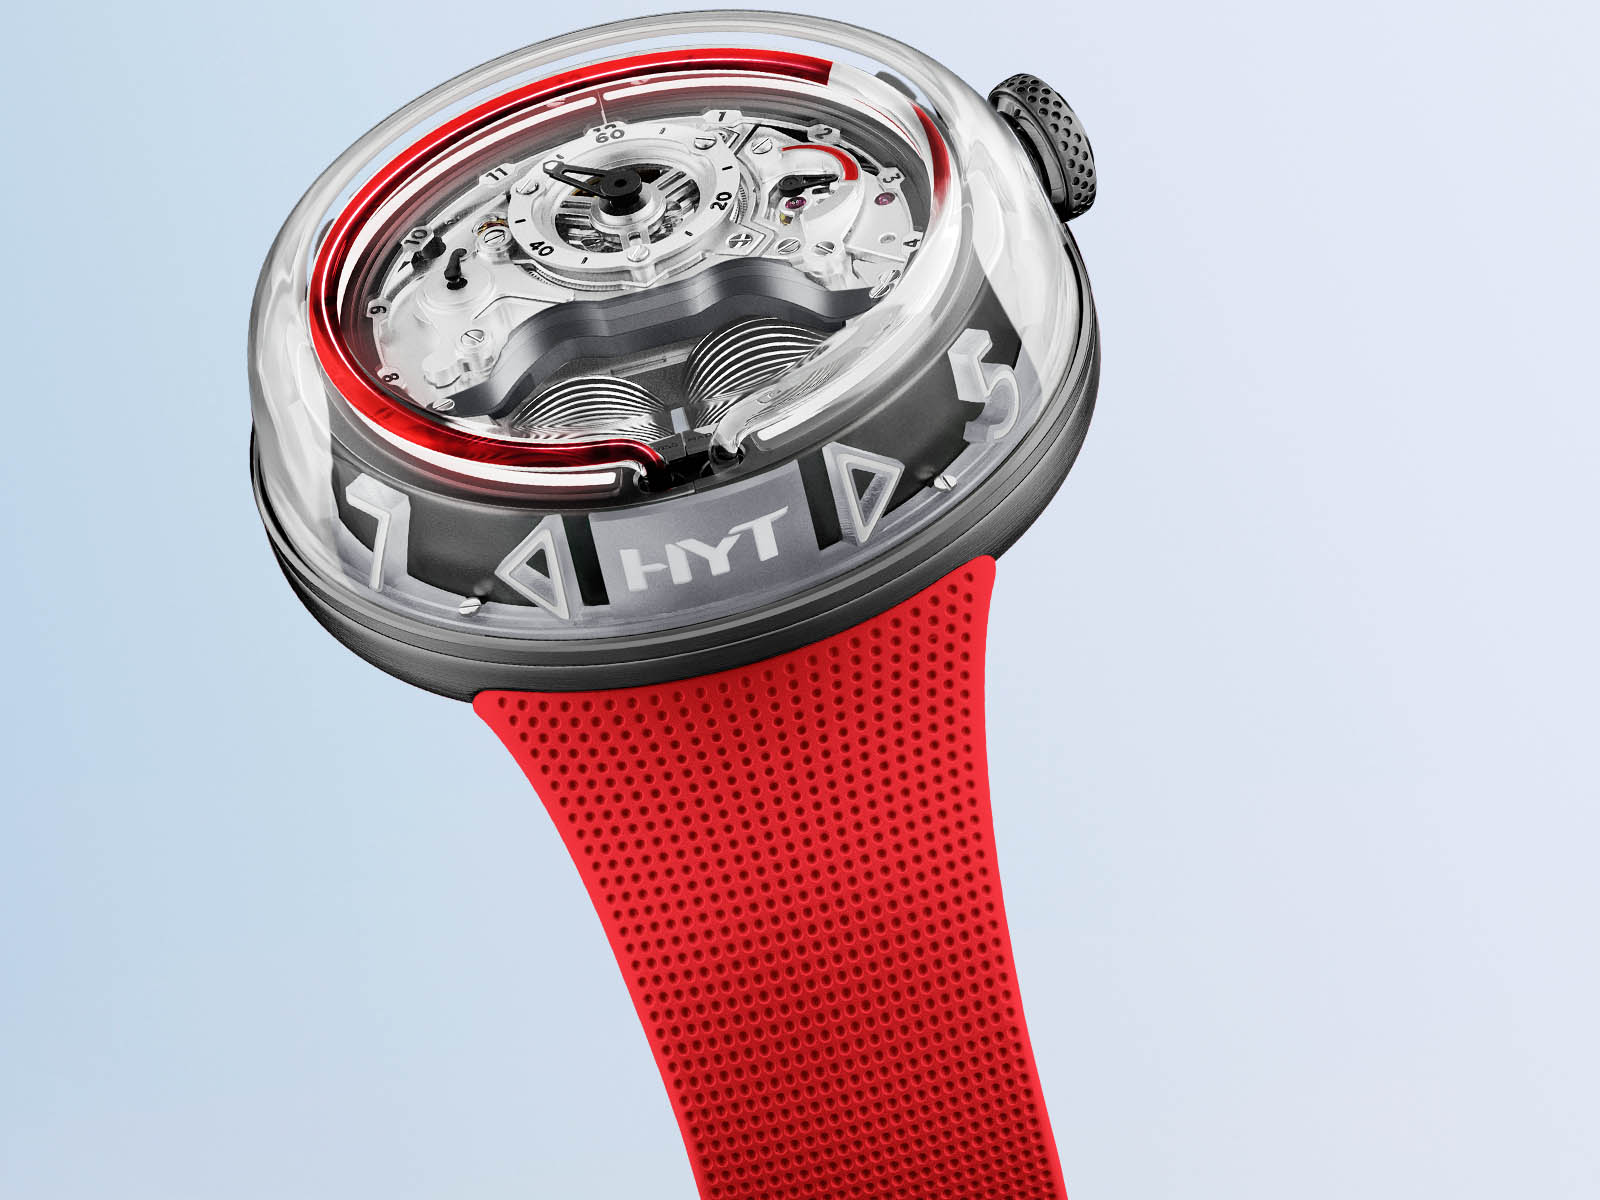 h02248-hyt-h5-red-limited-edition-3.jpg